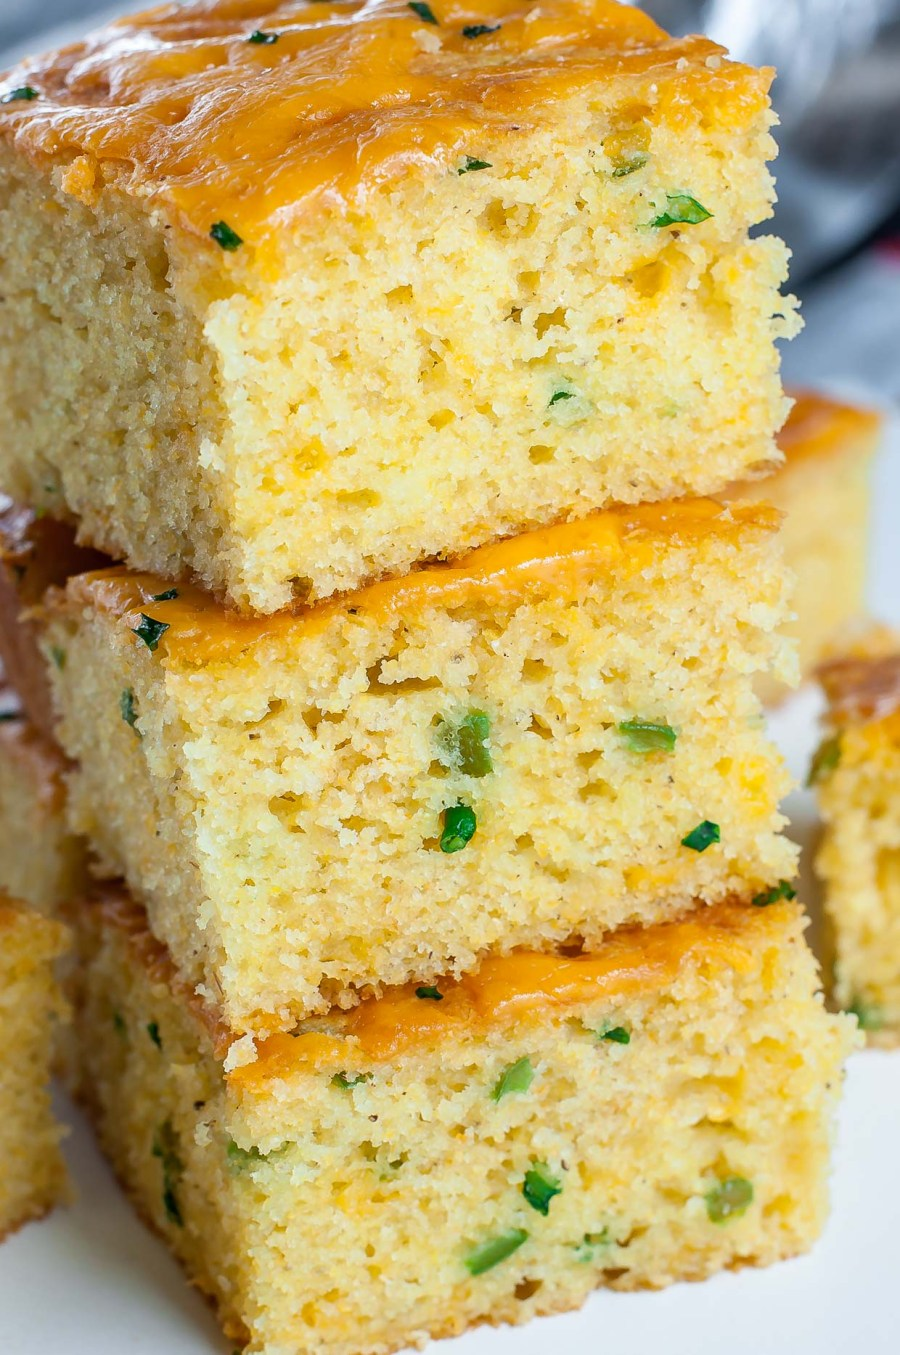 We love this Fuffy Jalapeño Cheddar Cornbread! This crazy good cornbread gets a leg up from two classic mix-ins: ooey gooey cheddar cheese and fiery jalapeño. The result is a kiss of heat blanketed by cheesy cornbread goodness.